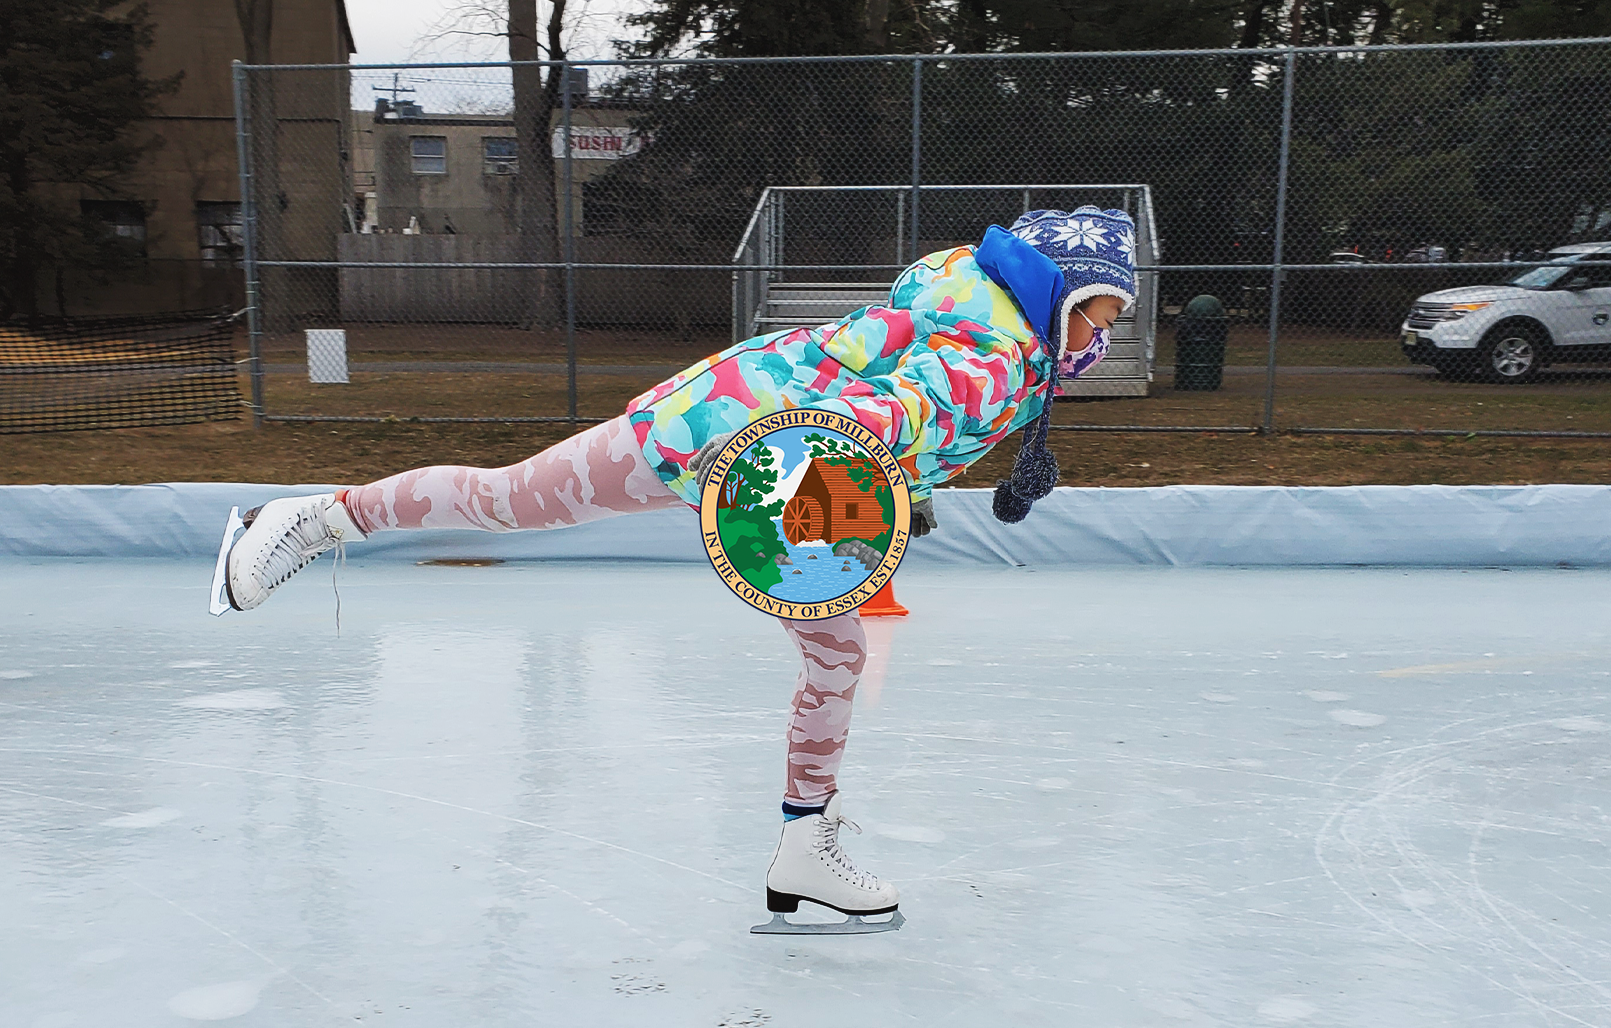 Millburn Resident skating on temporary ice rink in Taylor Park